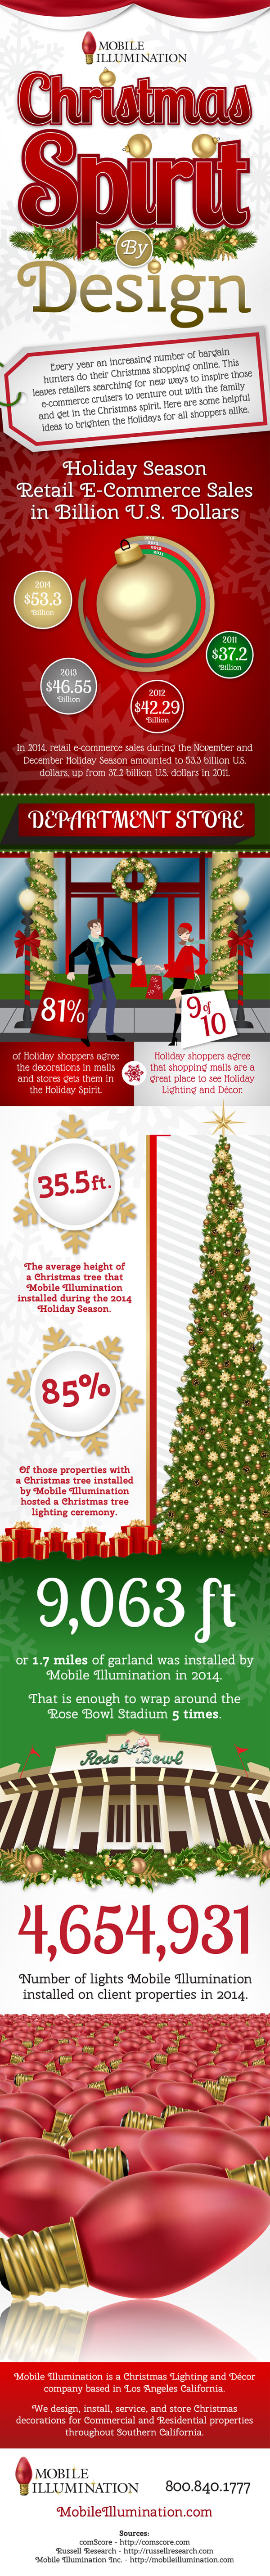 INFOGRAPHIC: Christmas Spirit By Design